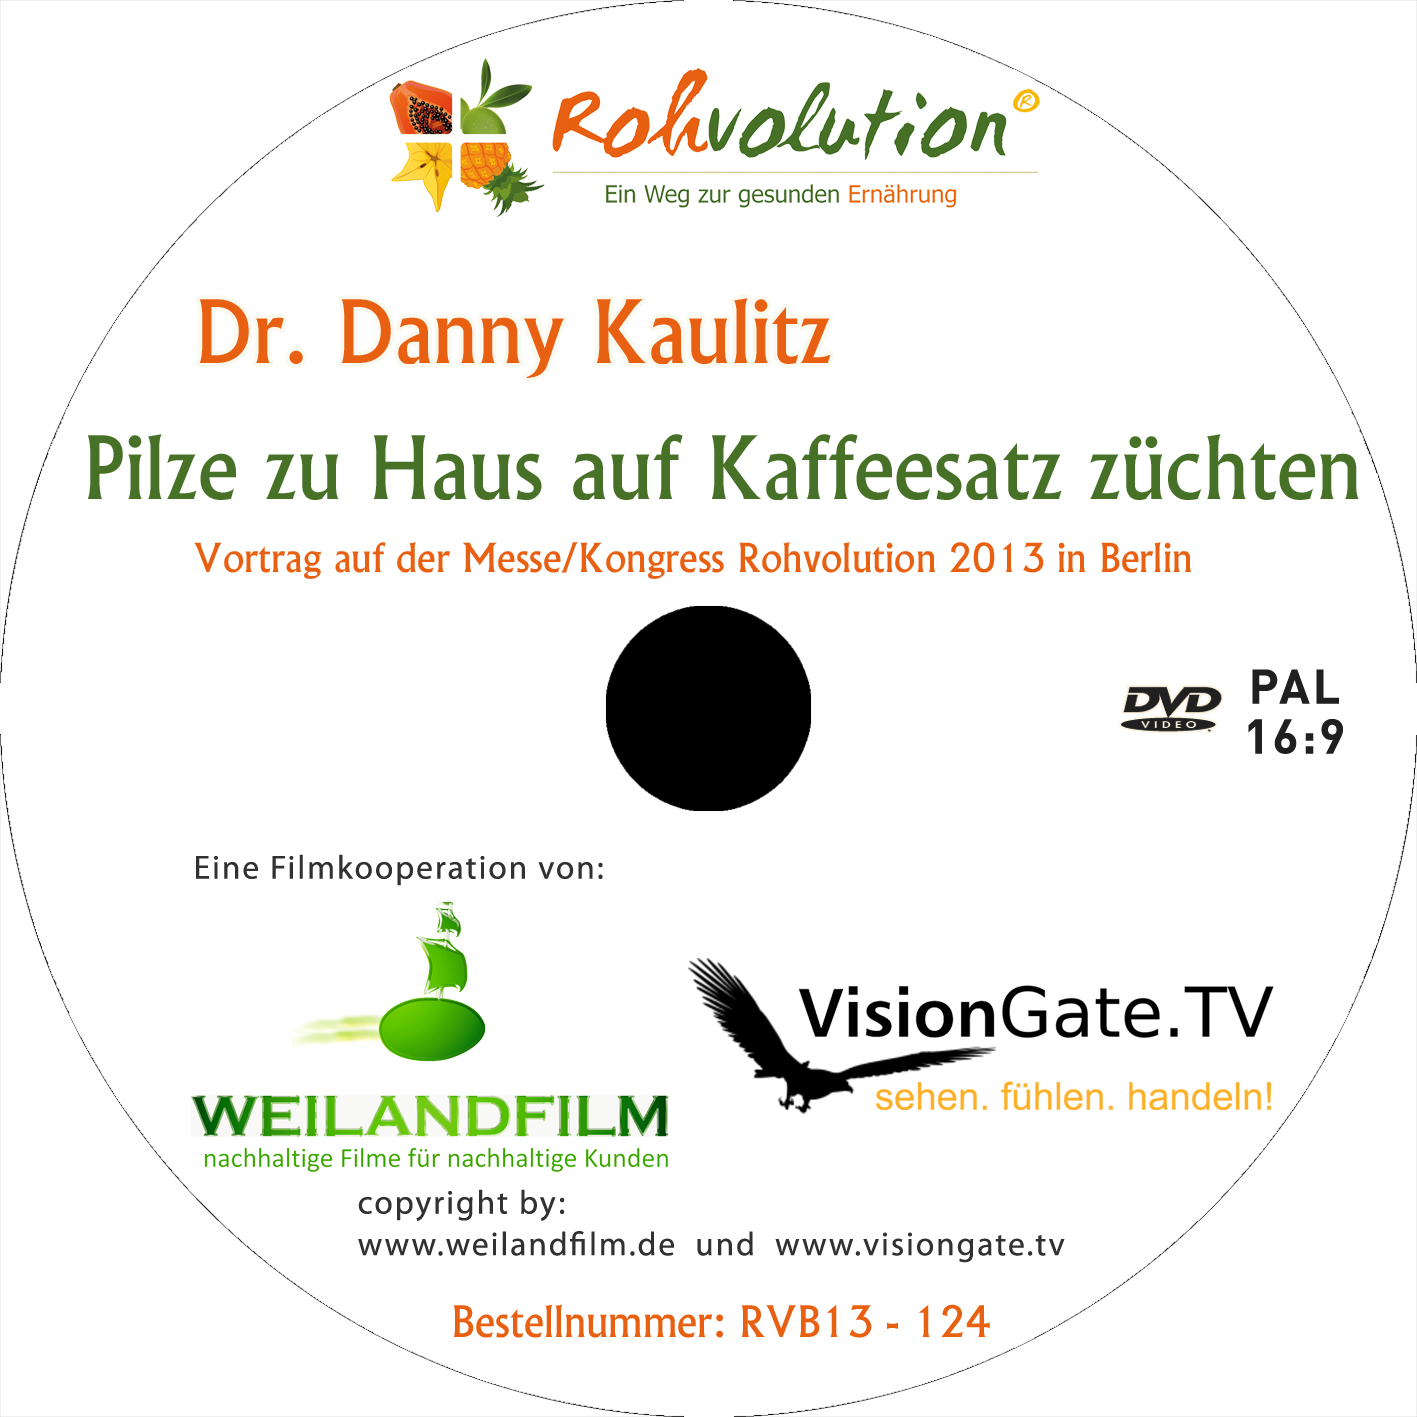 neue weltsicht shop dr danny kaulitz pilze zu haus auf kaffeesatz z chten spirituelle filme. Black Bedroom Furniture Sets. Home Design Ideas